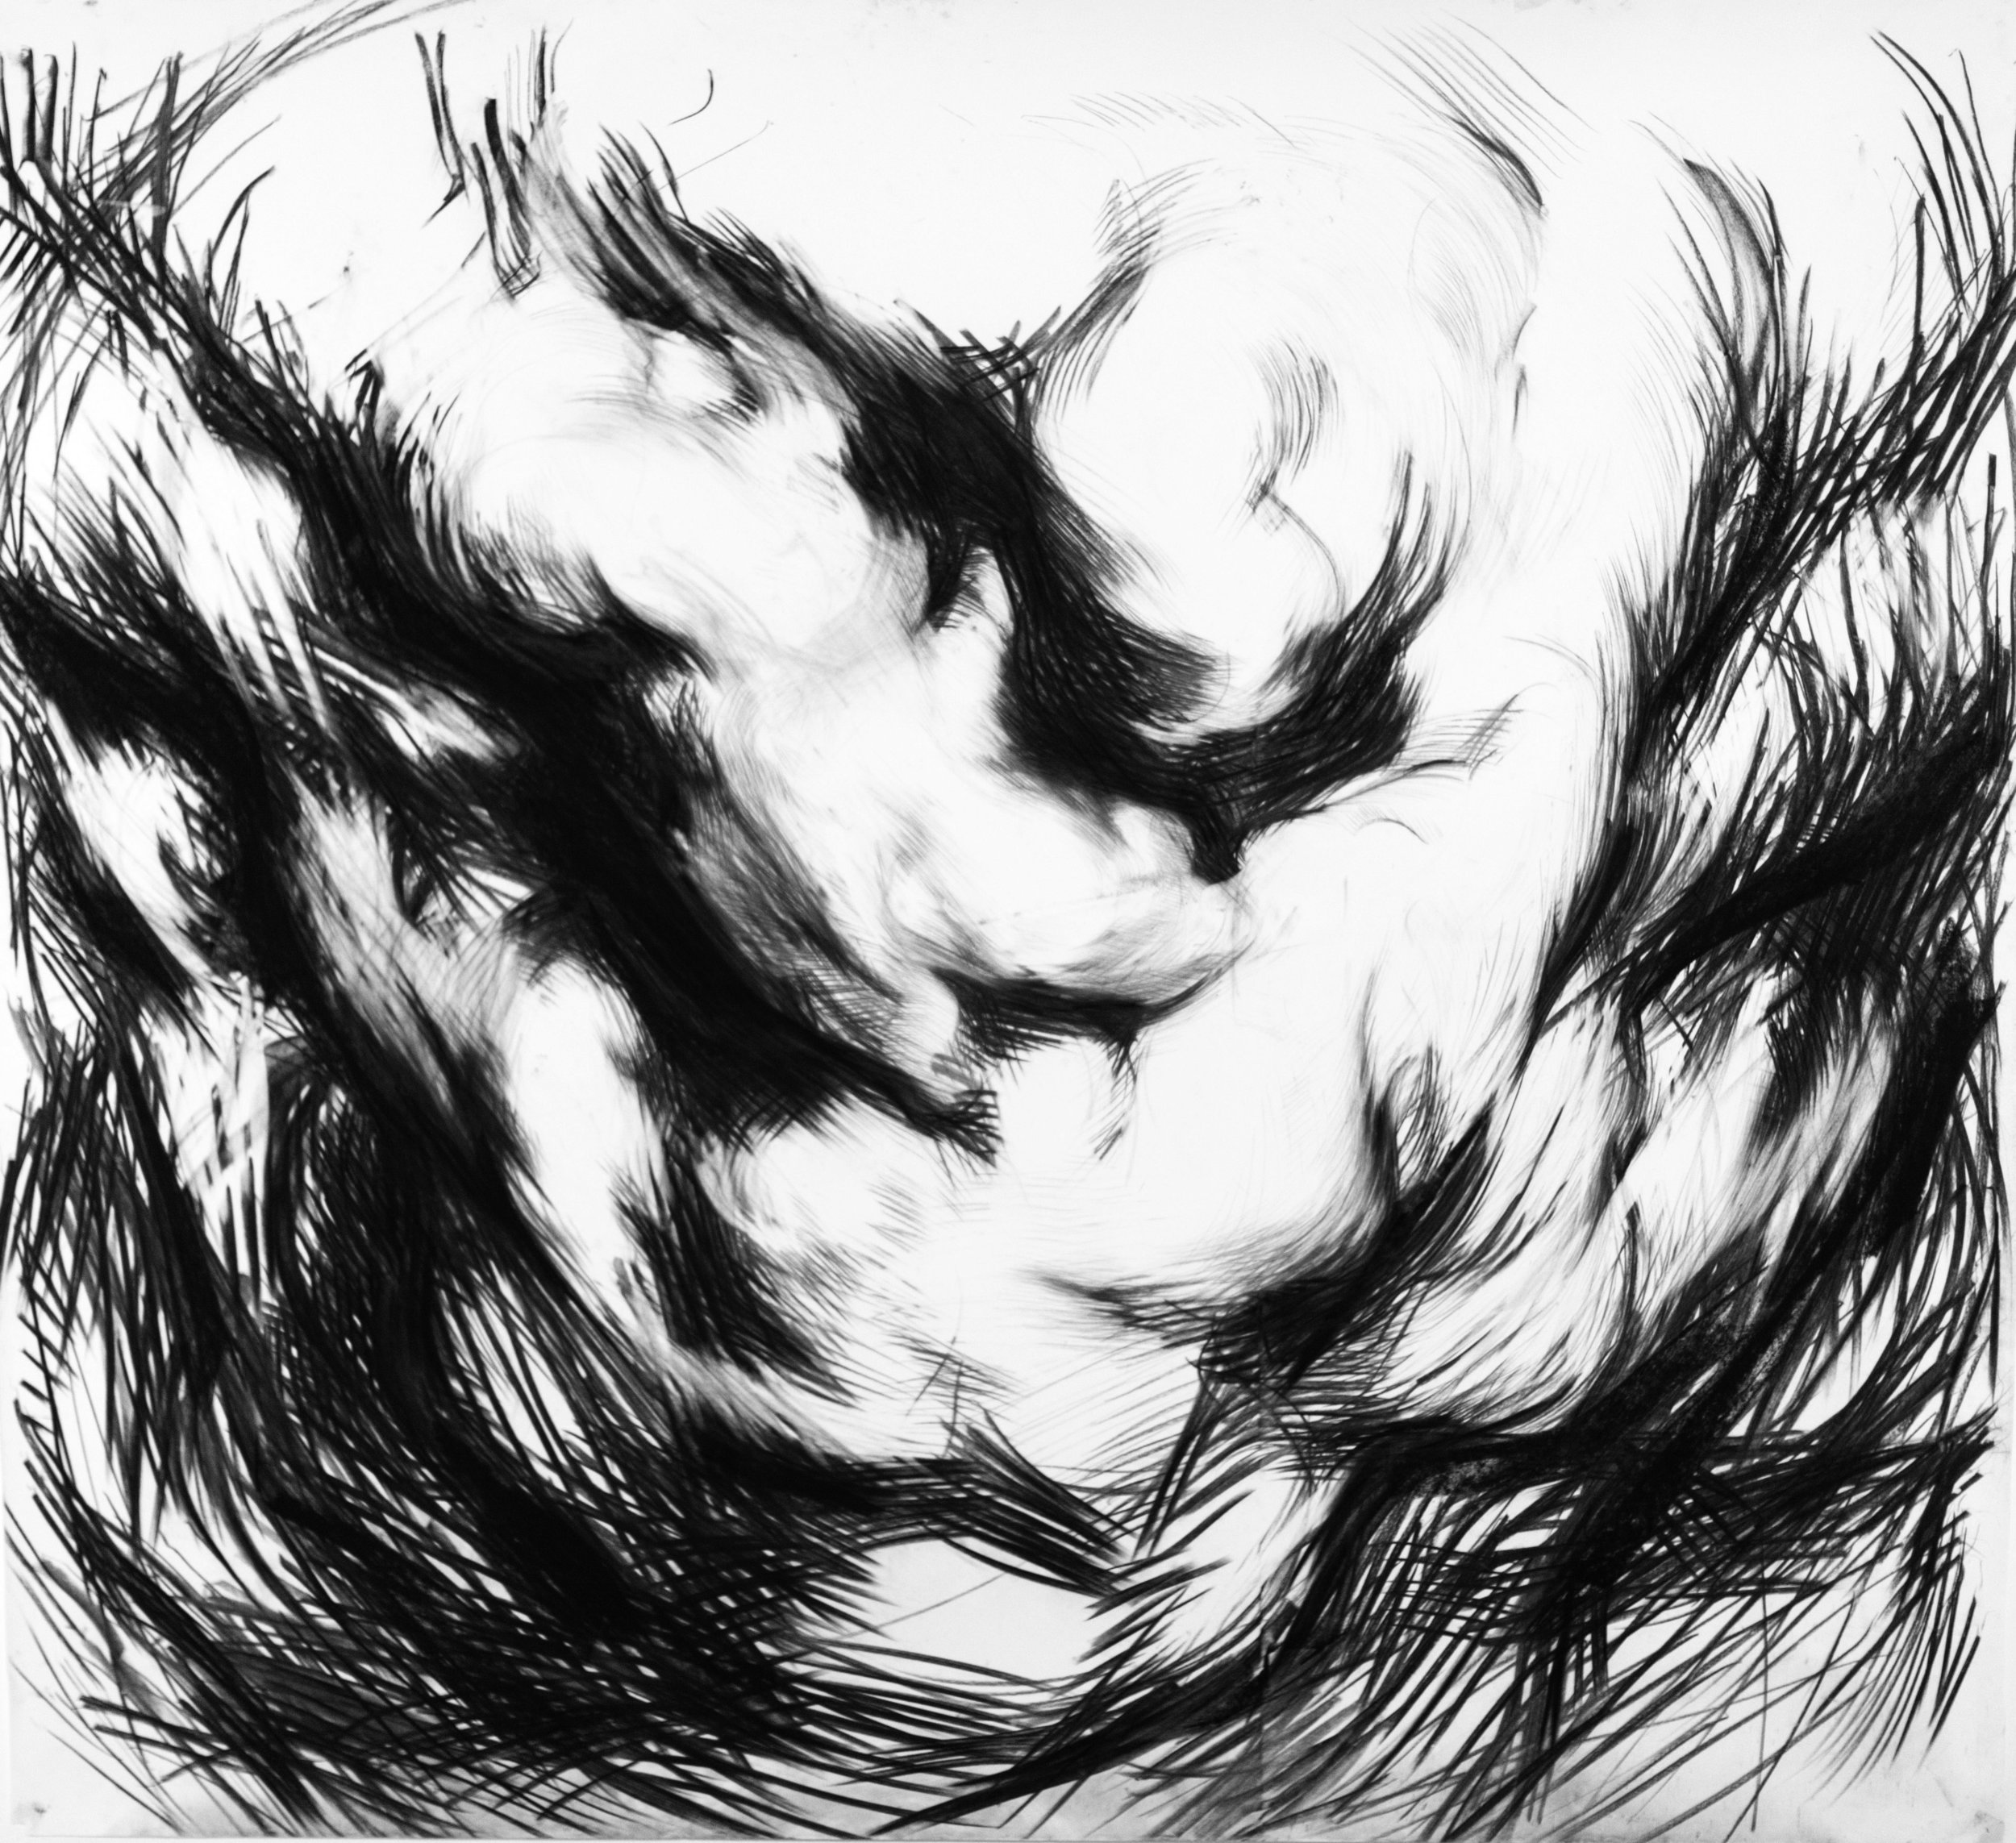 Cloud Study No.6,  2014   Charcoal on paper 110 x 110 cm